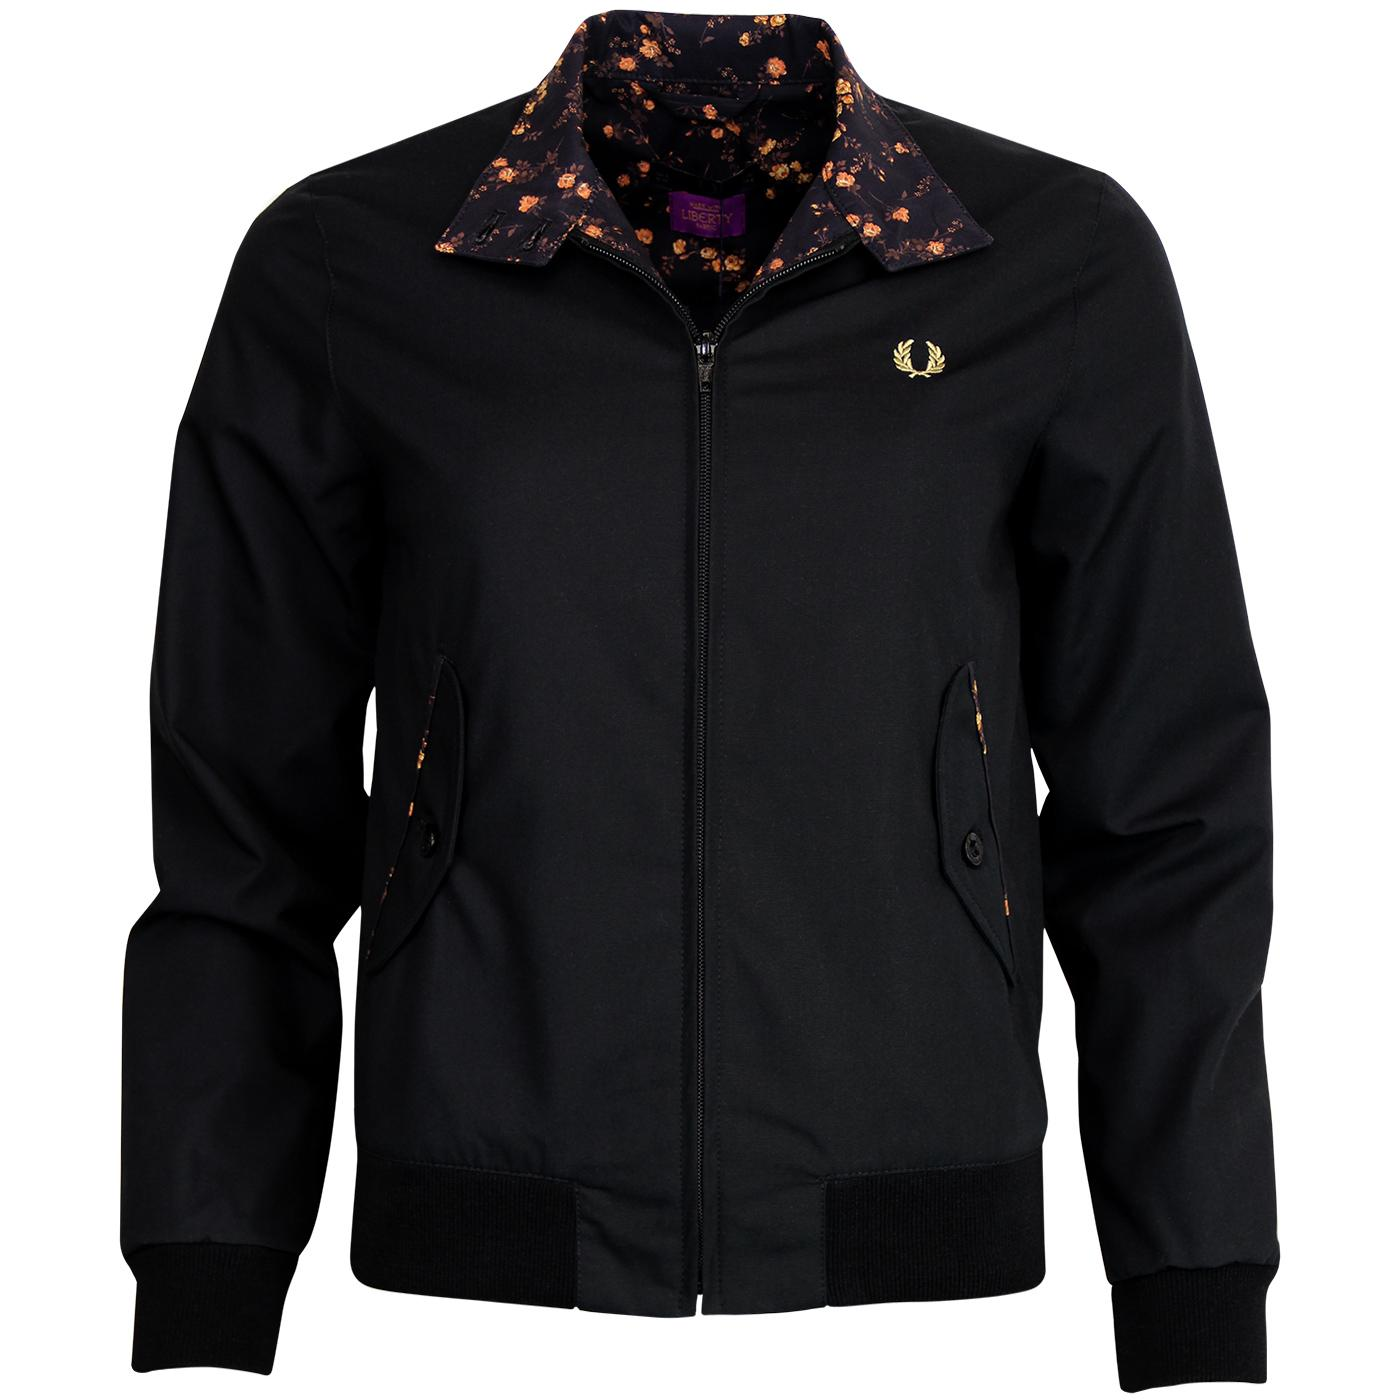 FRED PERRY Women's Liberty Print Harrington Jacket